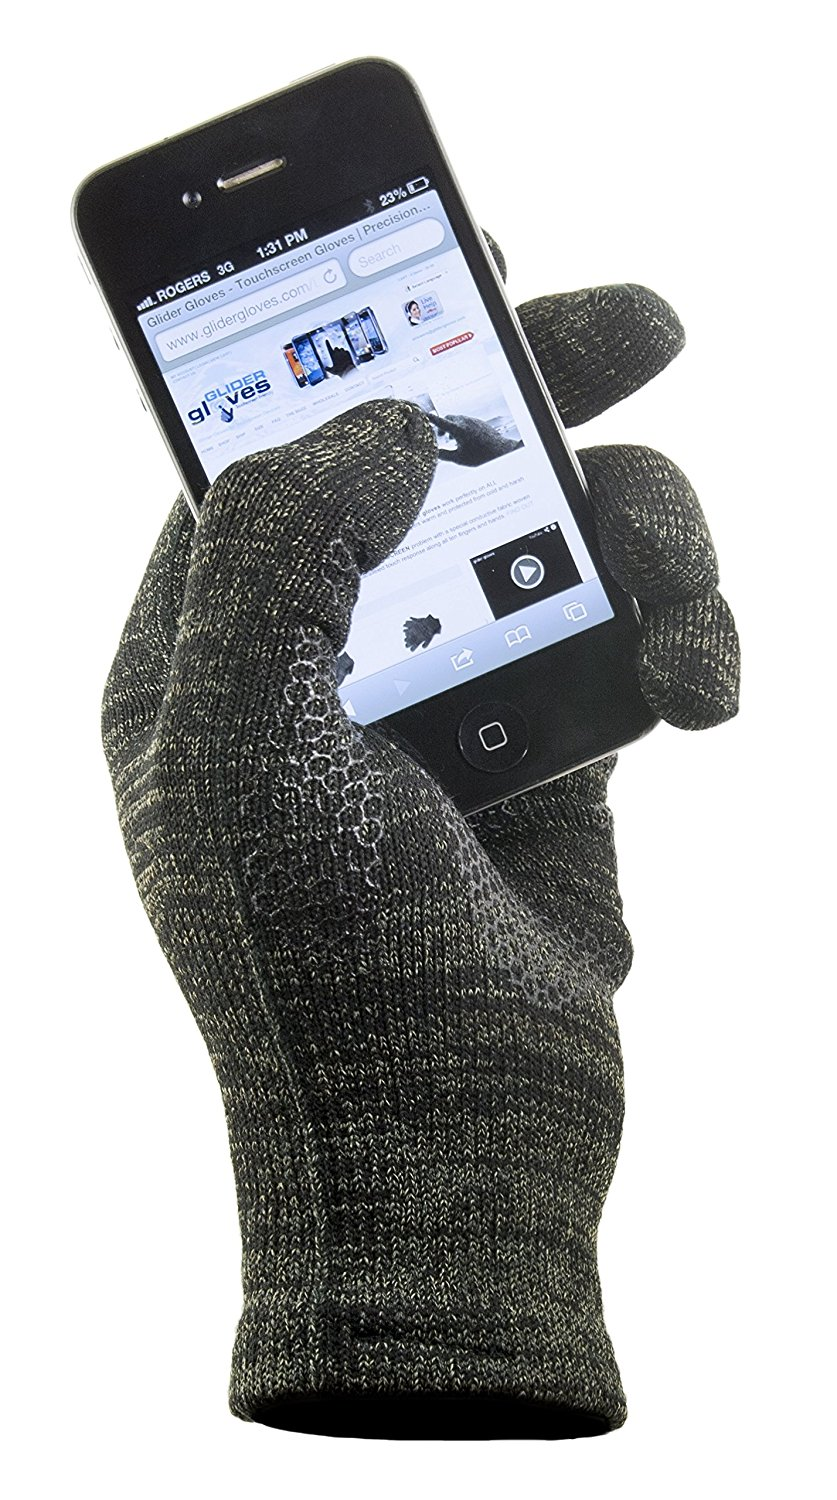 8447da69fa GliderGlove Copper Infused Touch Screen Gloves - Entire Surface Works on  iPhones, Androids, Ipads